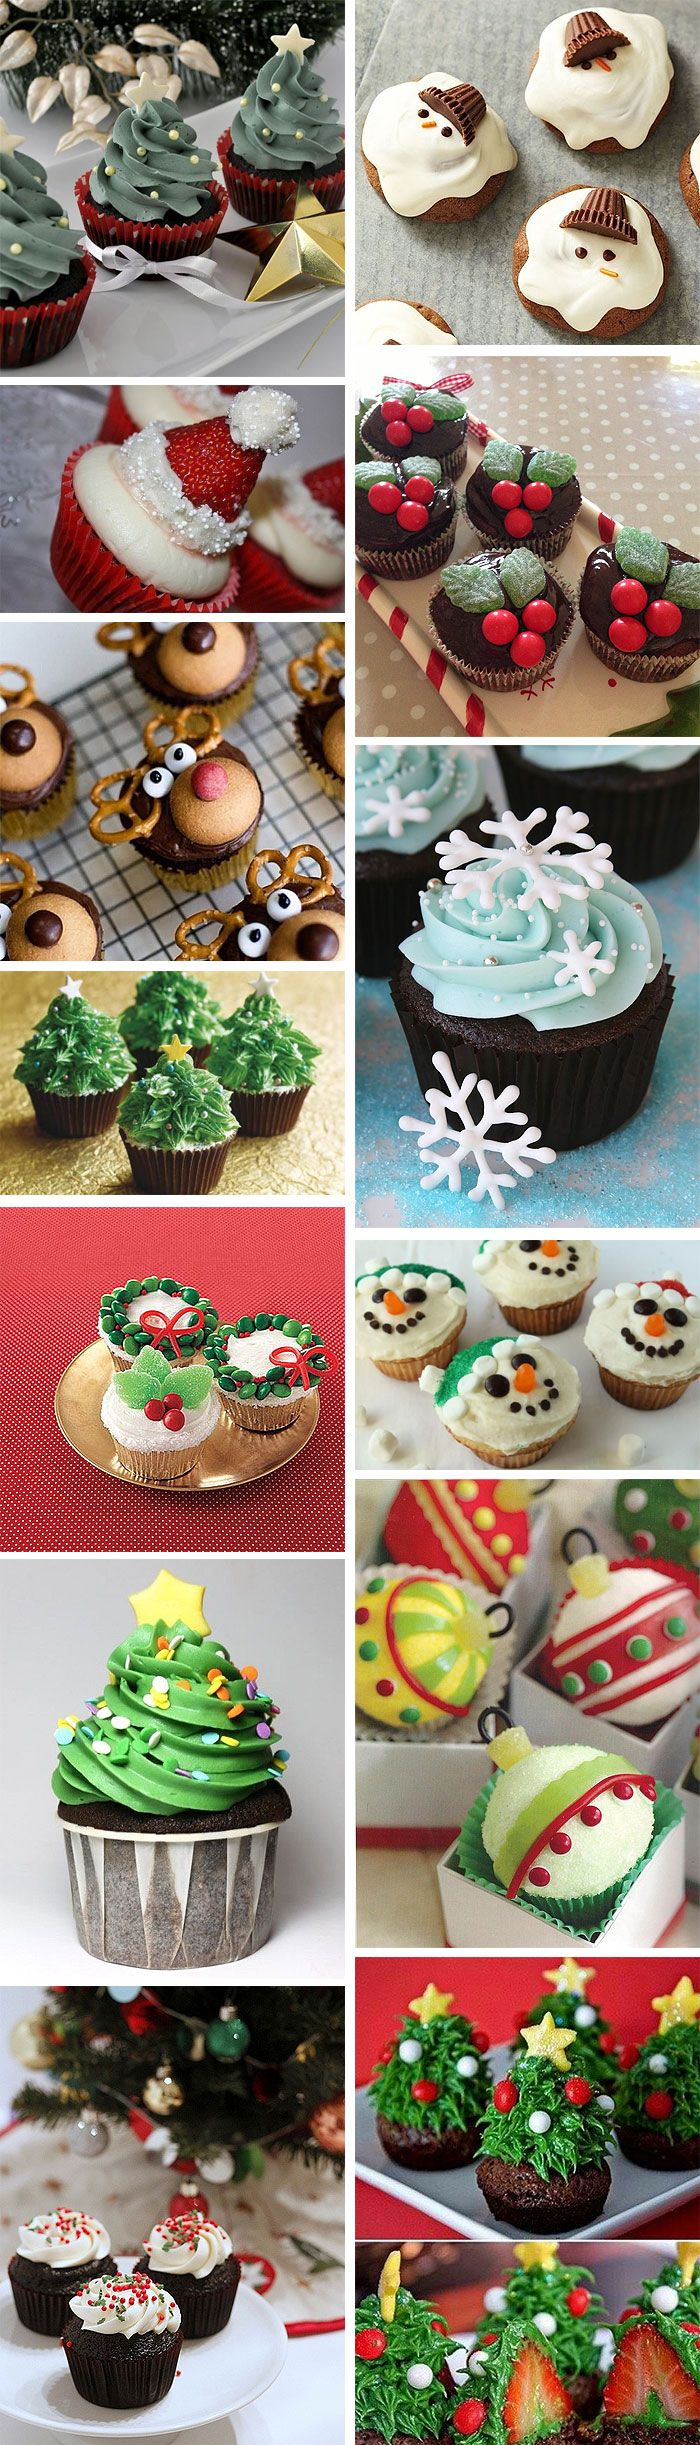 13 clever (and easy) Christmas cupcake decorating ideas-how to decorate Christmas cupcakes - http://www.amazon.de/dp/B011TOV7Z2 http://www.amazon.co.uk/dp/B011TOV7Z2